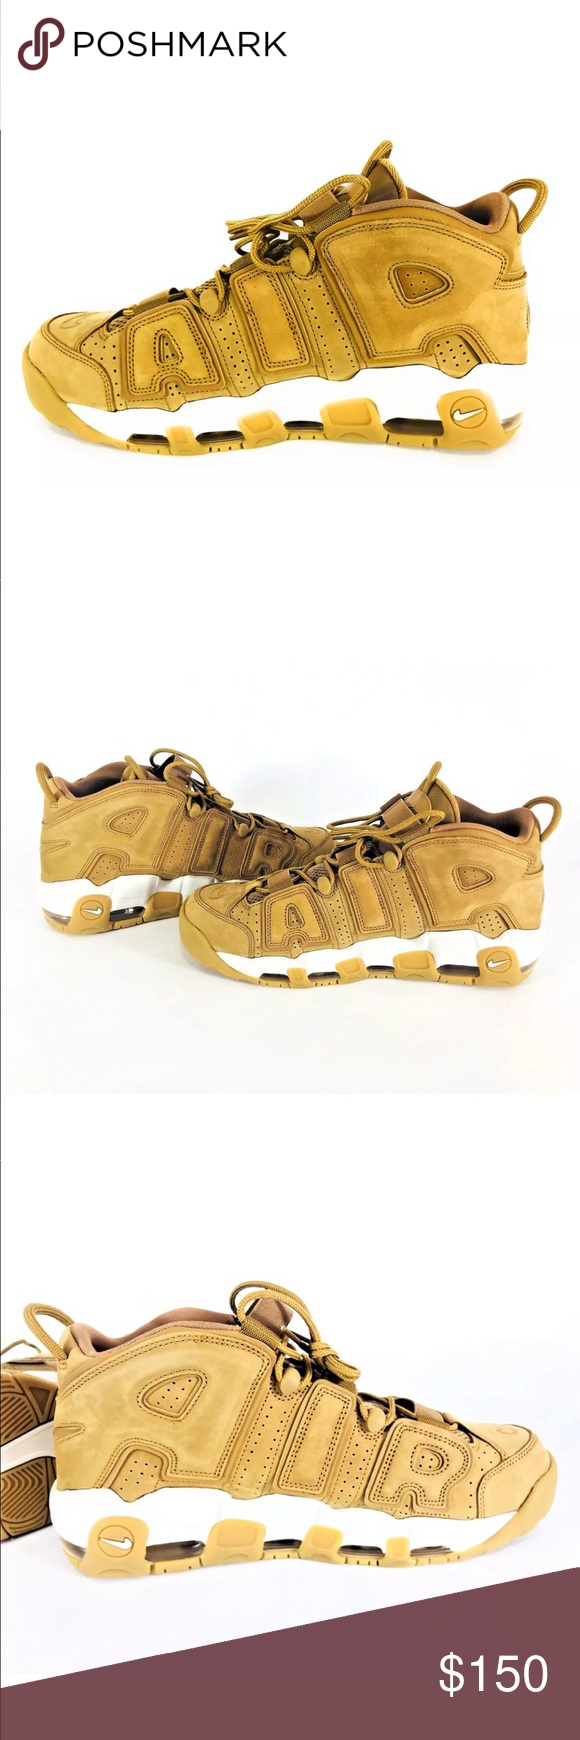 10ba8a6bcb Nike Air More Uptempo 96 PRM Nike Air More Uptempo 96 PRM Flax Phantom Wheat  AA4060 200 Men's Size 12 New (w/out box) Nike Shoes Sneakers